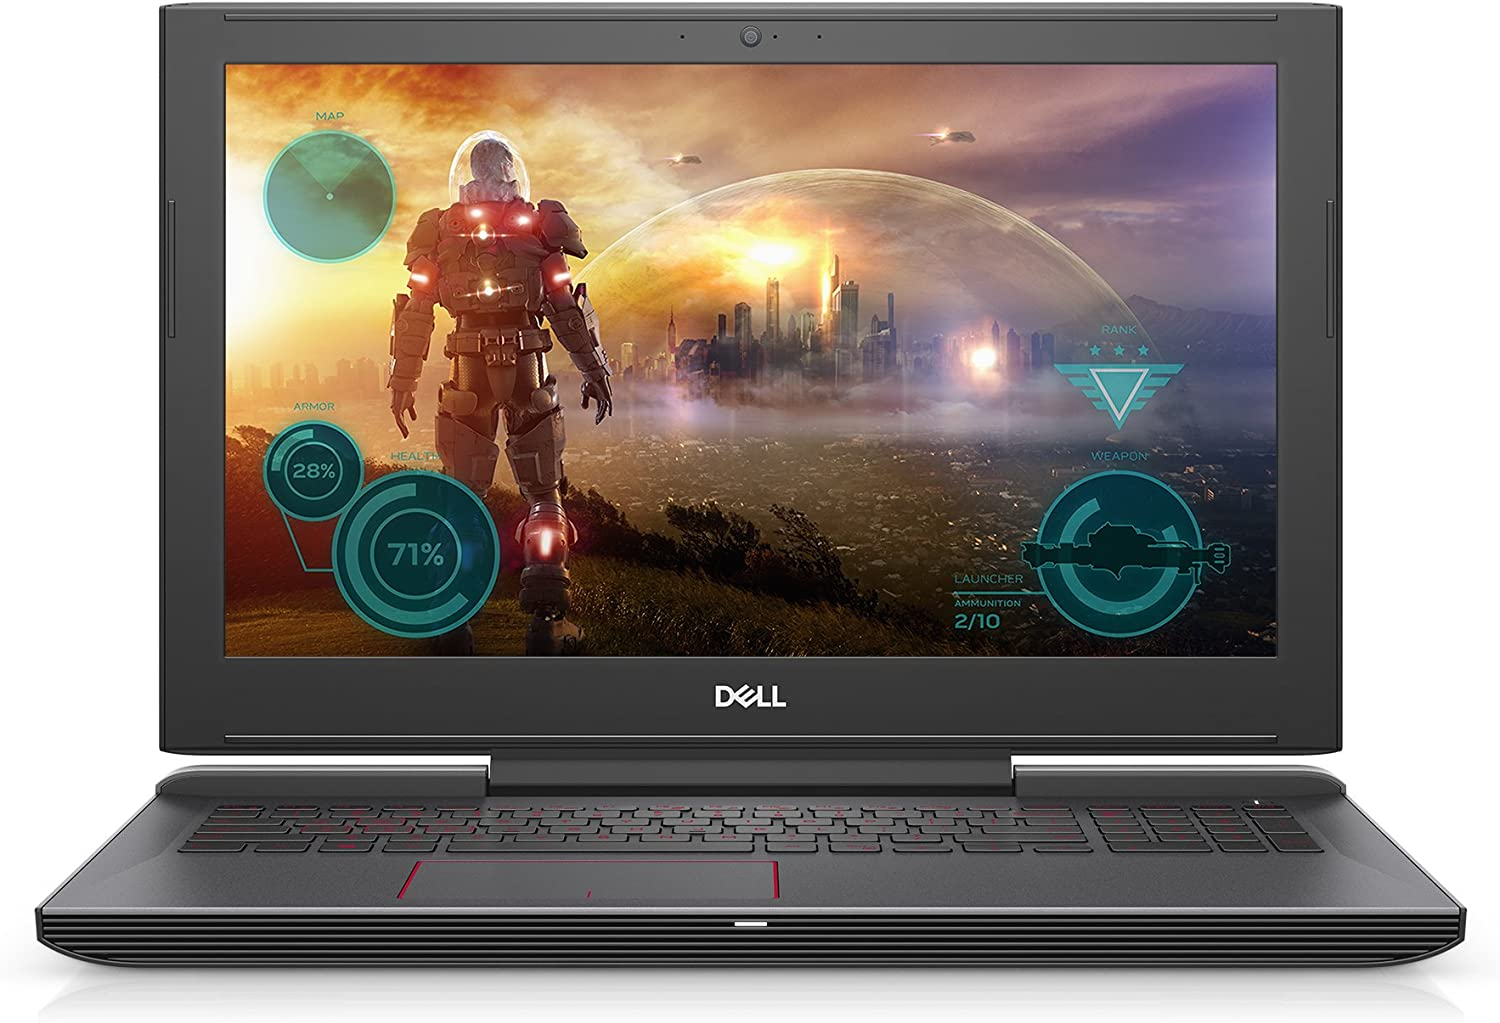 "Dell Gaming Laptop G5587-5859BLK-PUS G5 - 15.6"" LED Anti-Glare Display - 8th Gen Intel i5 Processor - 8GB Memory - 128GB SSD+1TB HDD - NVIDIA GeForce GTX 1060 6GB, Licorice"